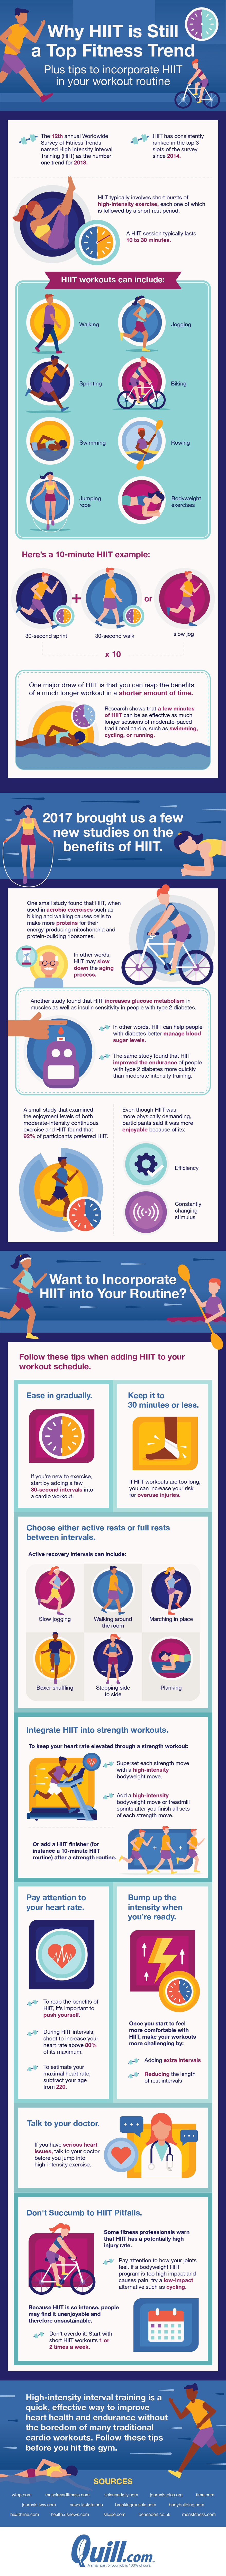 Why HIIT Consistently Tops Fitness Trend Rankings - Infographic